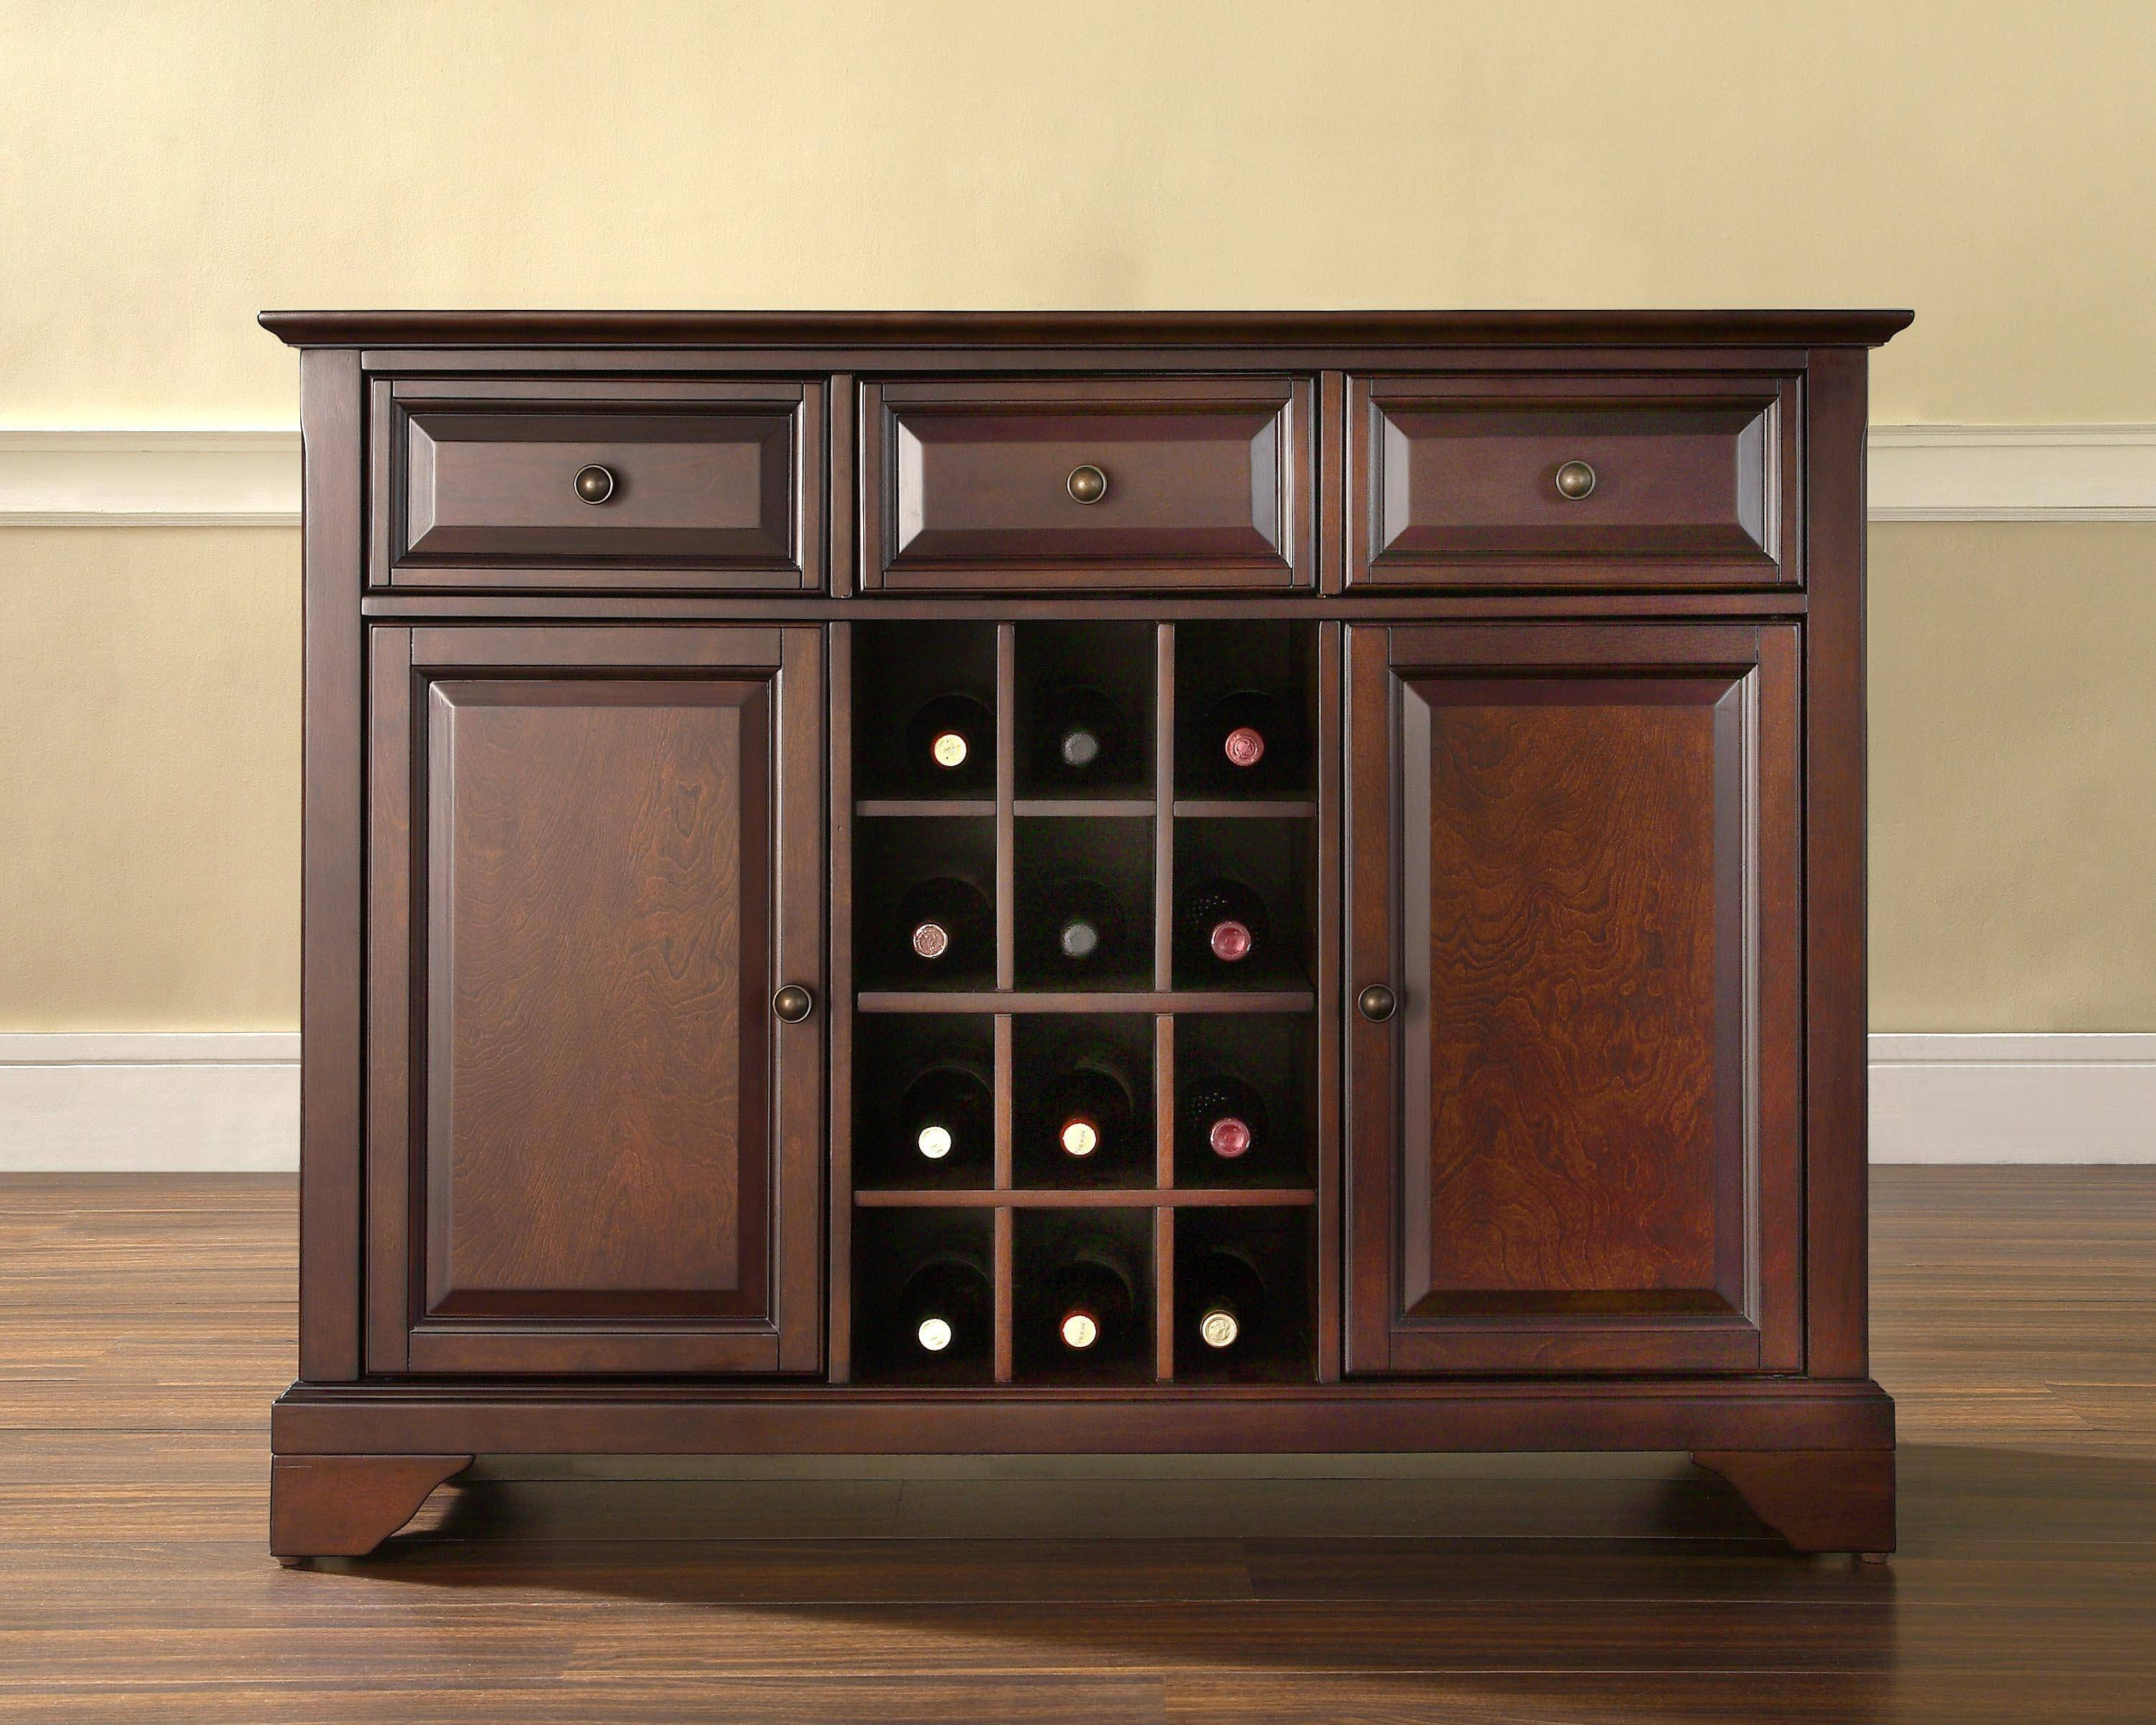 Best Of Buffet And Sideboards - Bjdgjy pertaining to Buffets and Sideboards (Image 1 of 15)